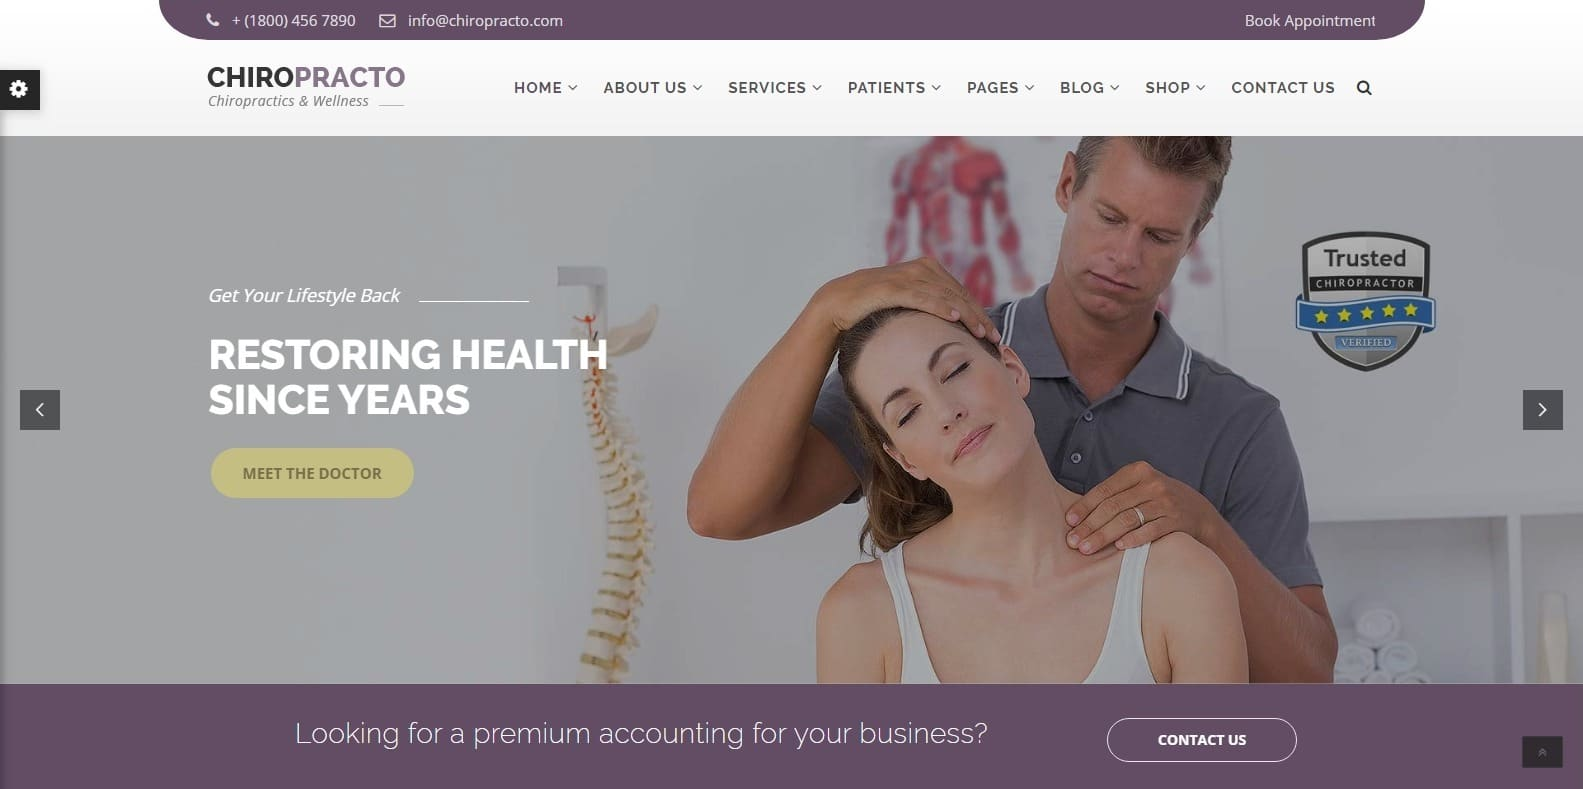 chiropracto-wordpress-physical-therapy-website-template